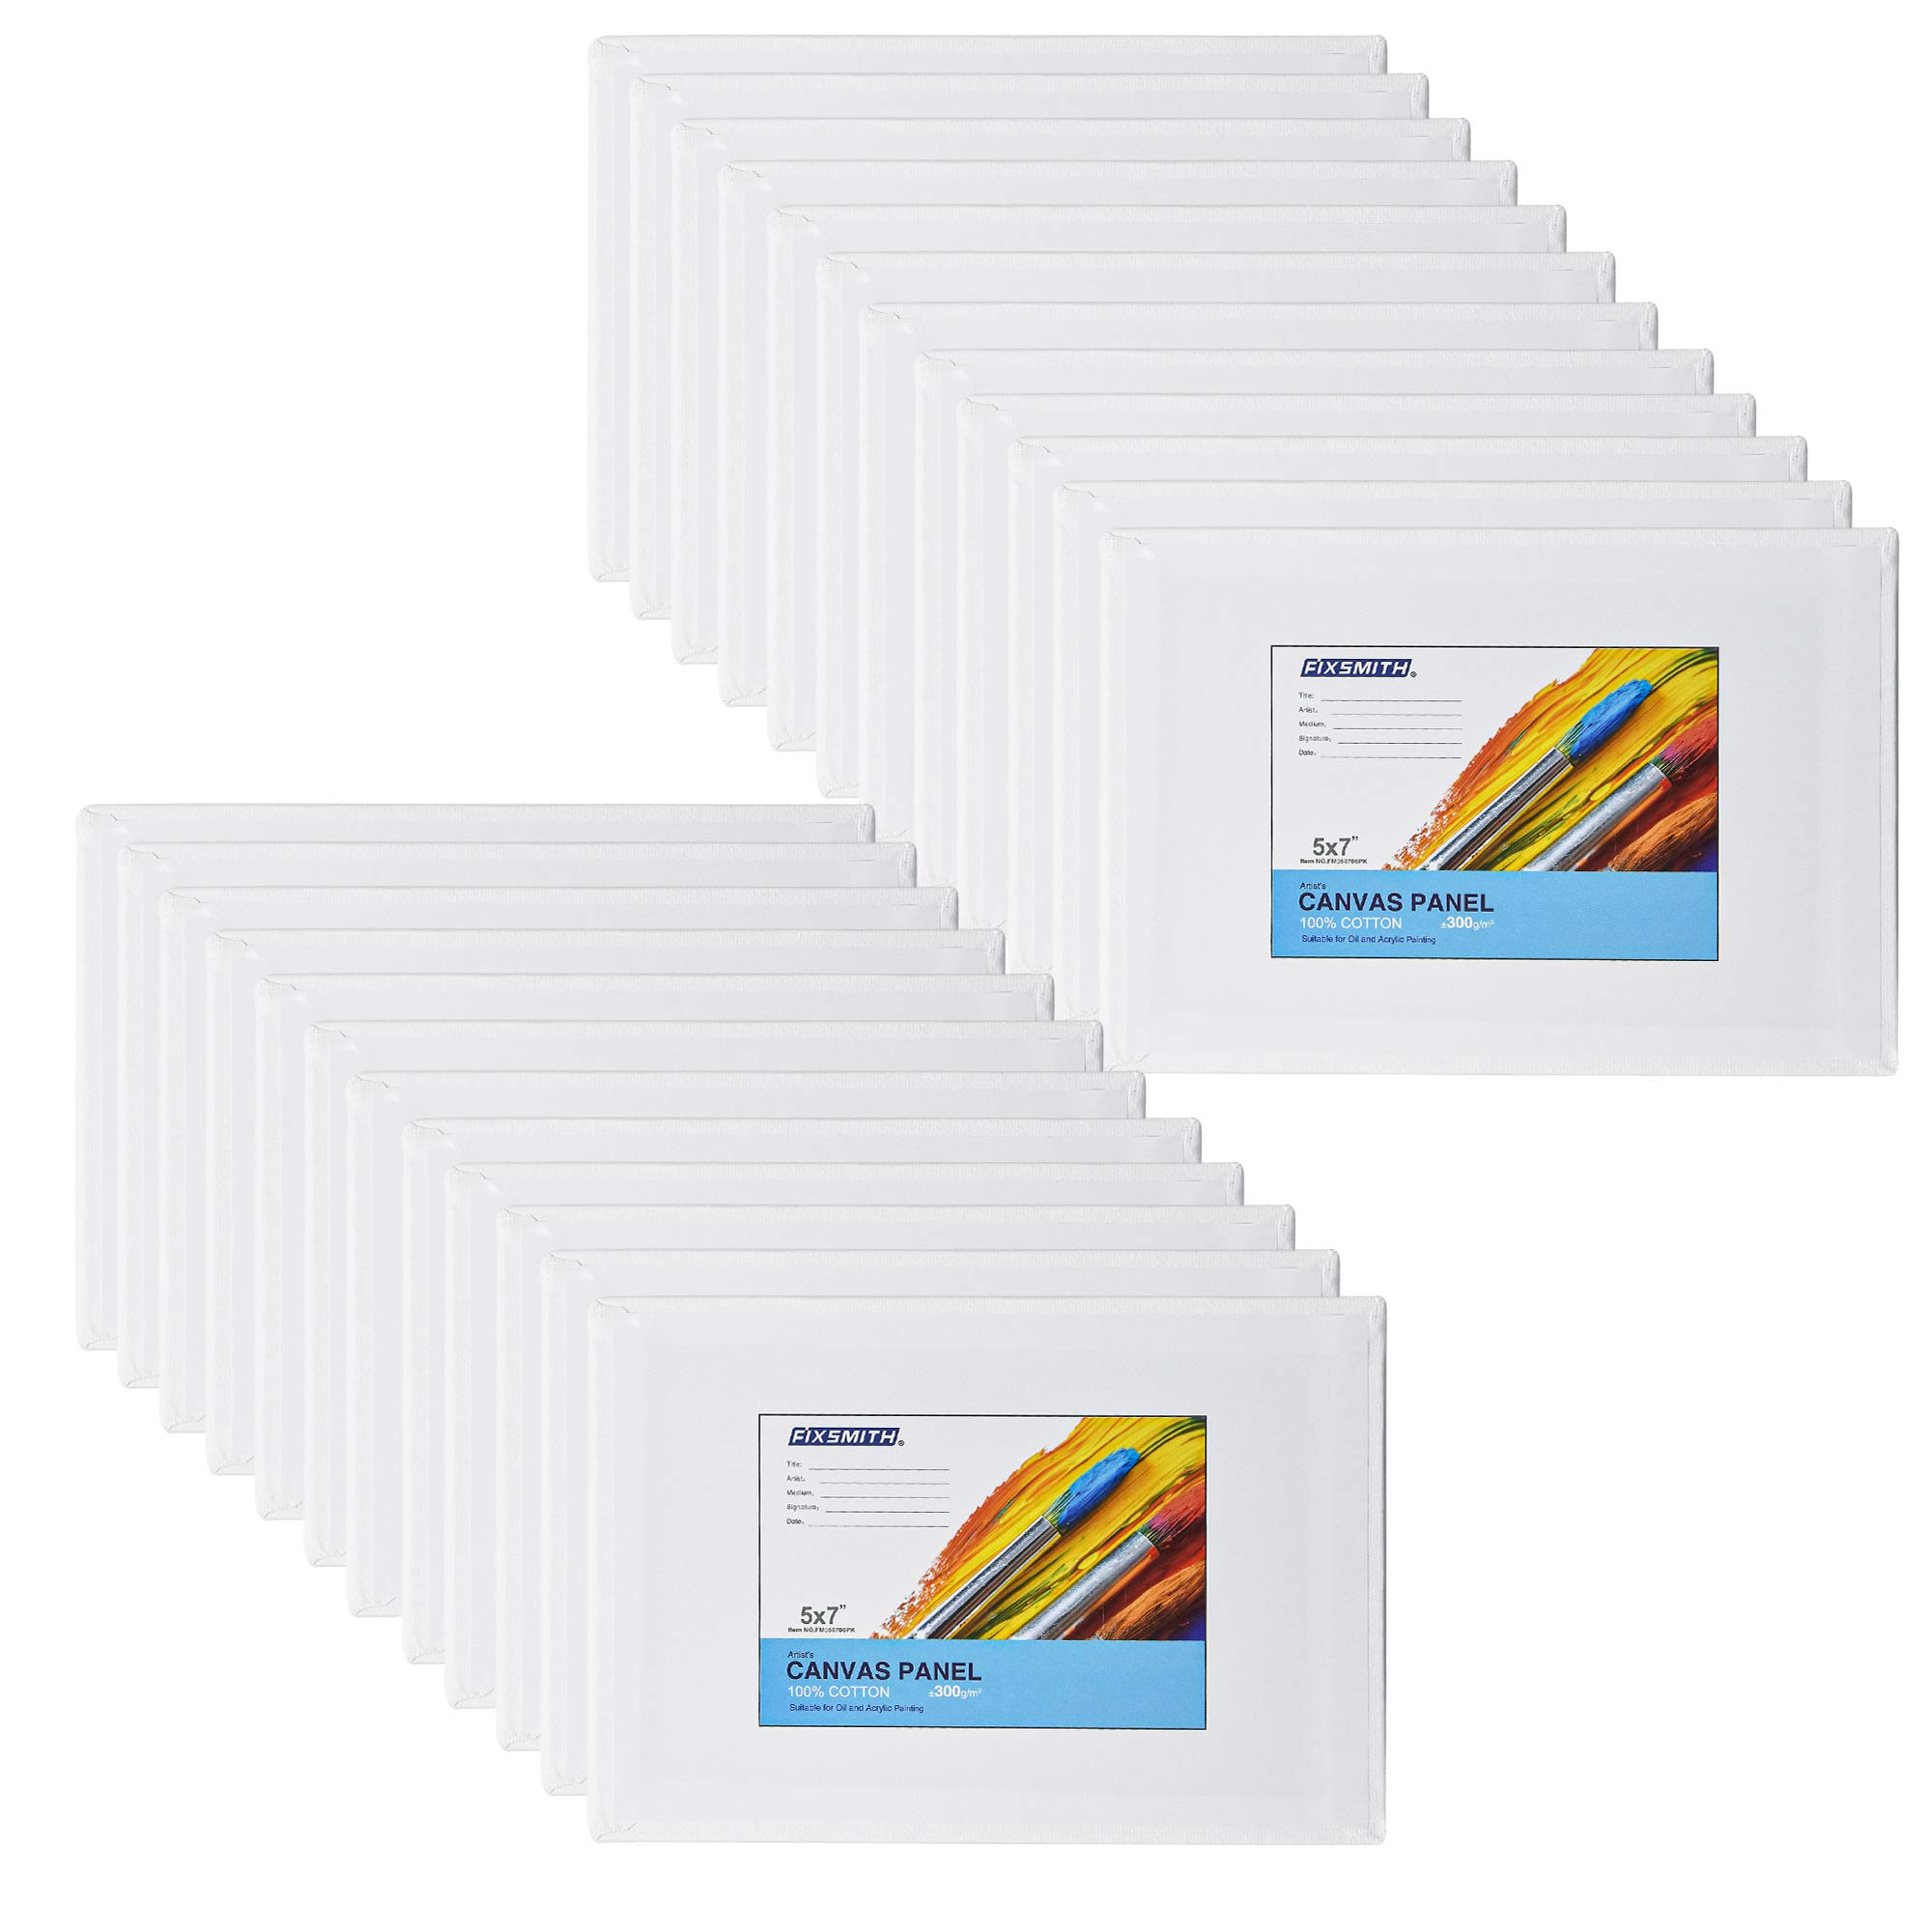 FIXSMITH Painting Canvas Panel Boards - 5x7 Inch Art Canvas,24 Pack Mini Canvases,Primed Canvas Panels,100% Cotton,Acid Free,Professional Quality Artist Canvas Board for Hobby Painters,Students & Kids